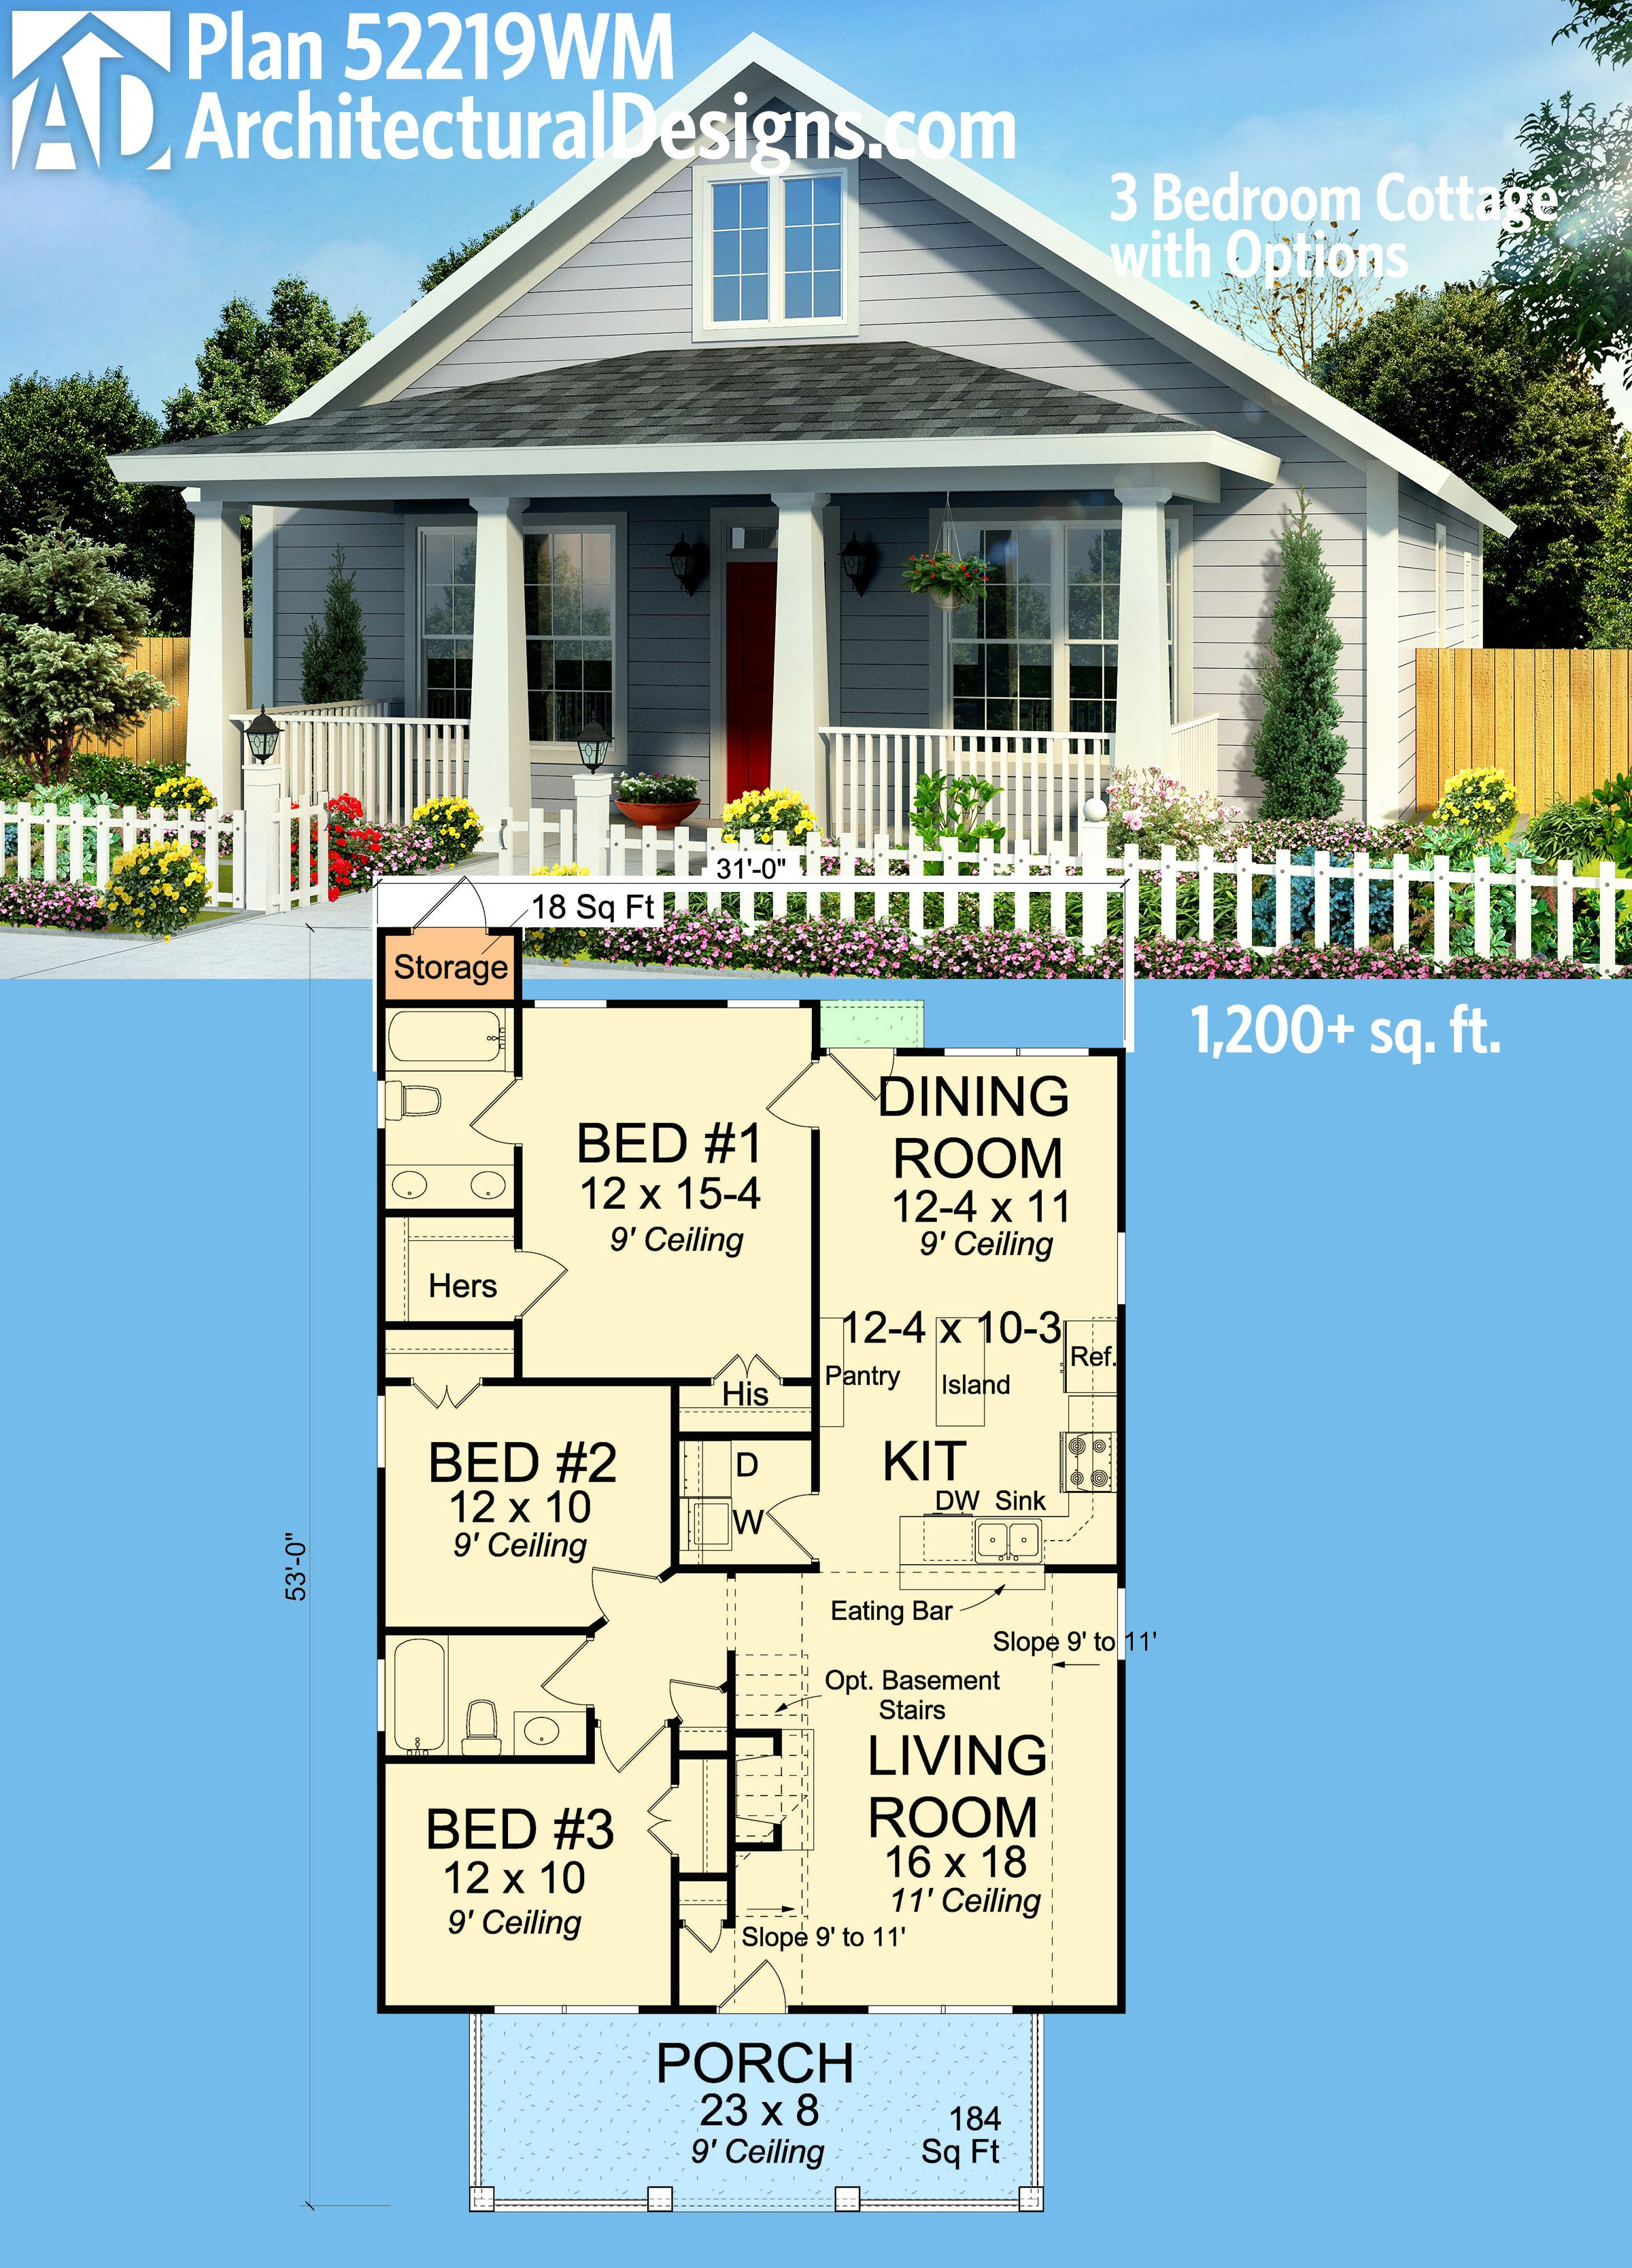 Plan 52219WM 3 Bedroom Cottage with Options Cottage house Front